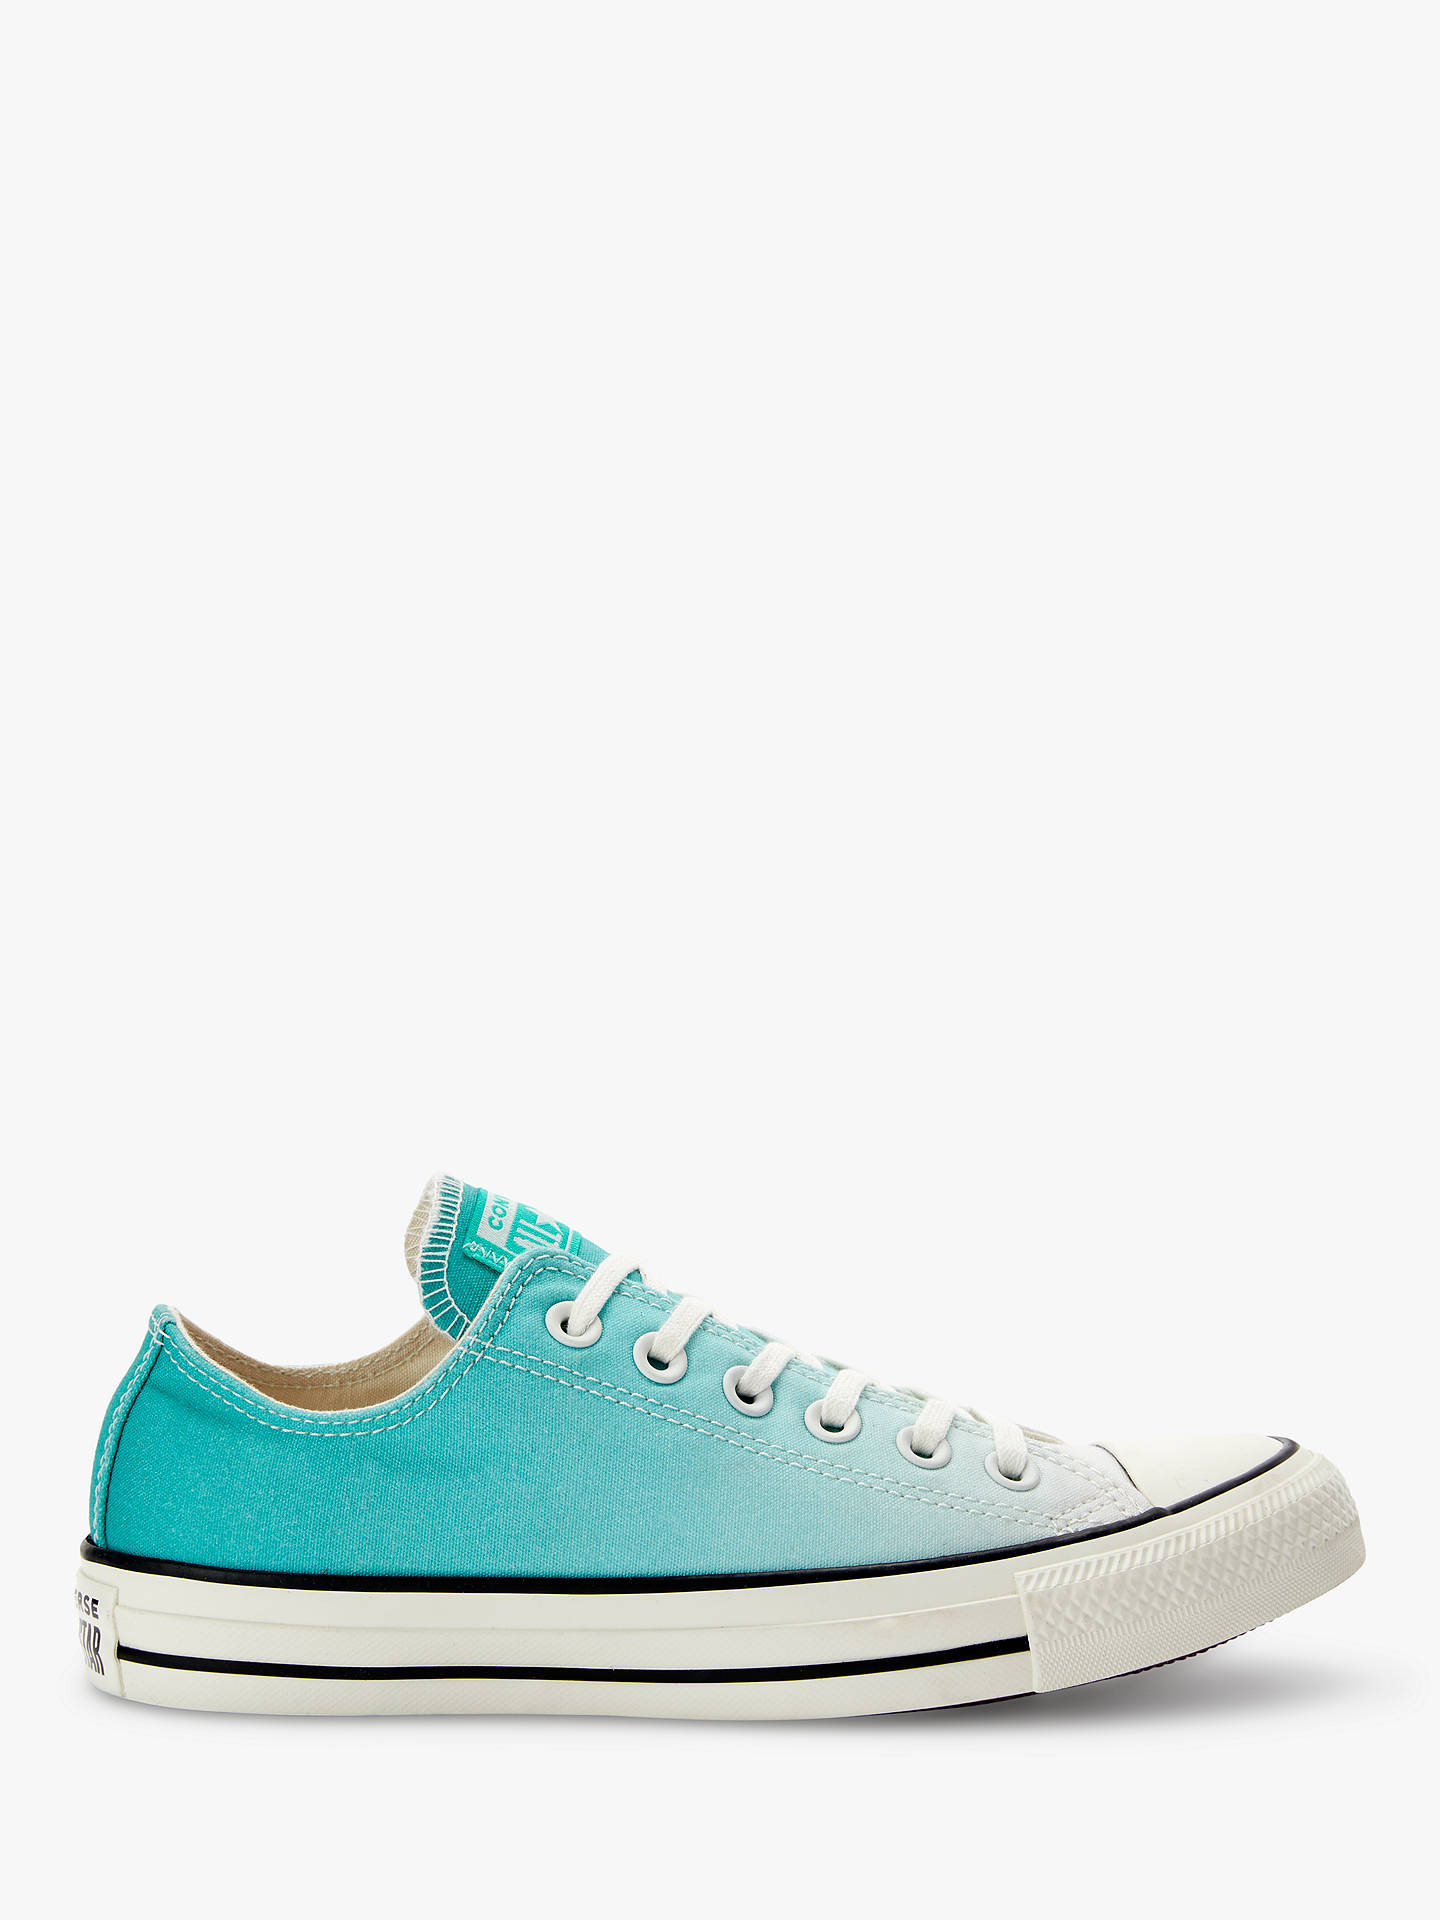 96b83e1df361 Converse Chuck Taylor All Star Ox Ombre Effect Trainers at John ...